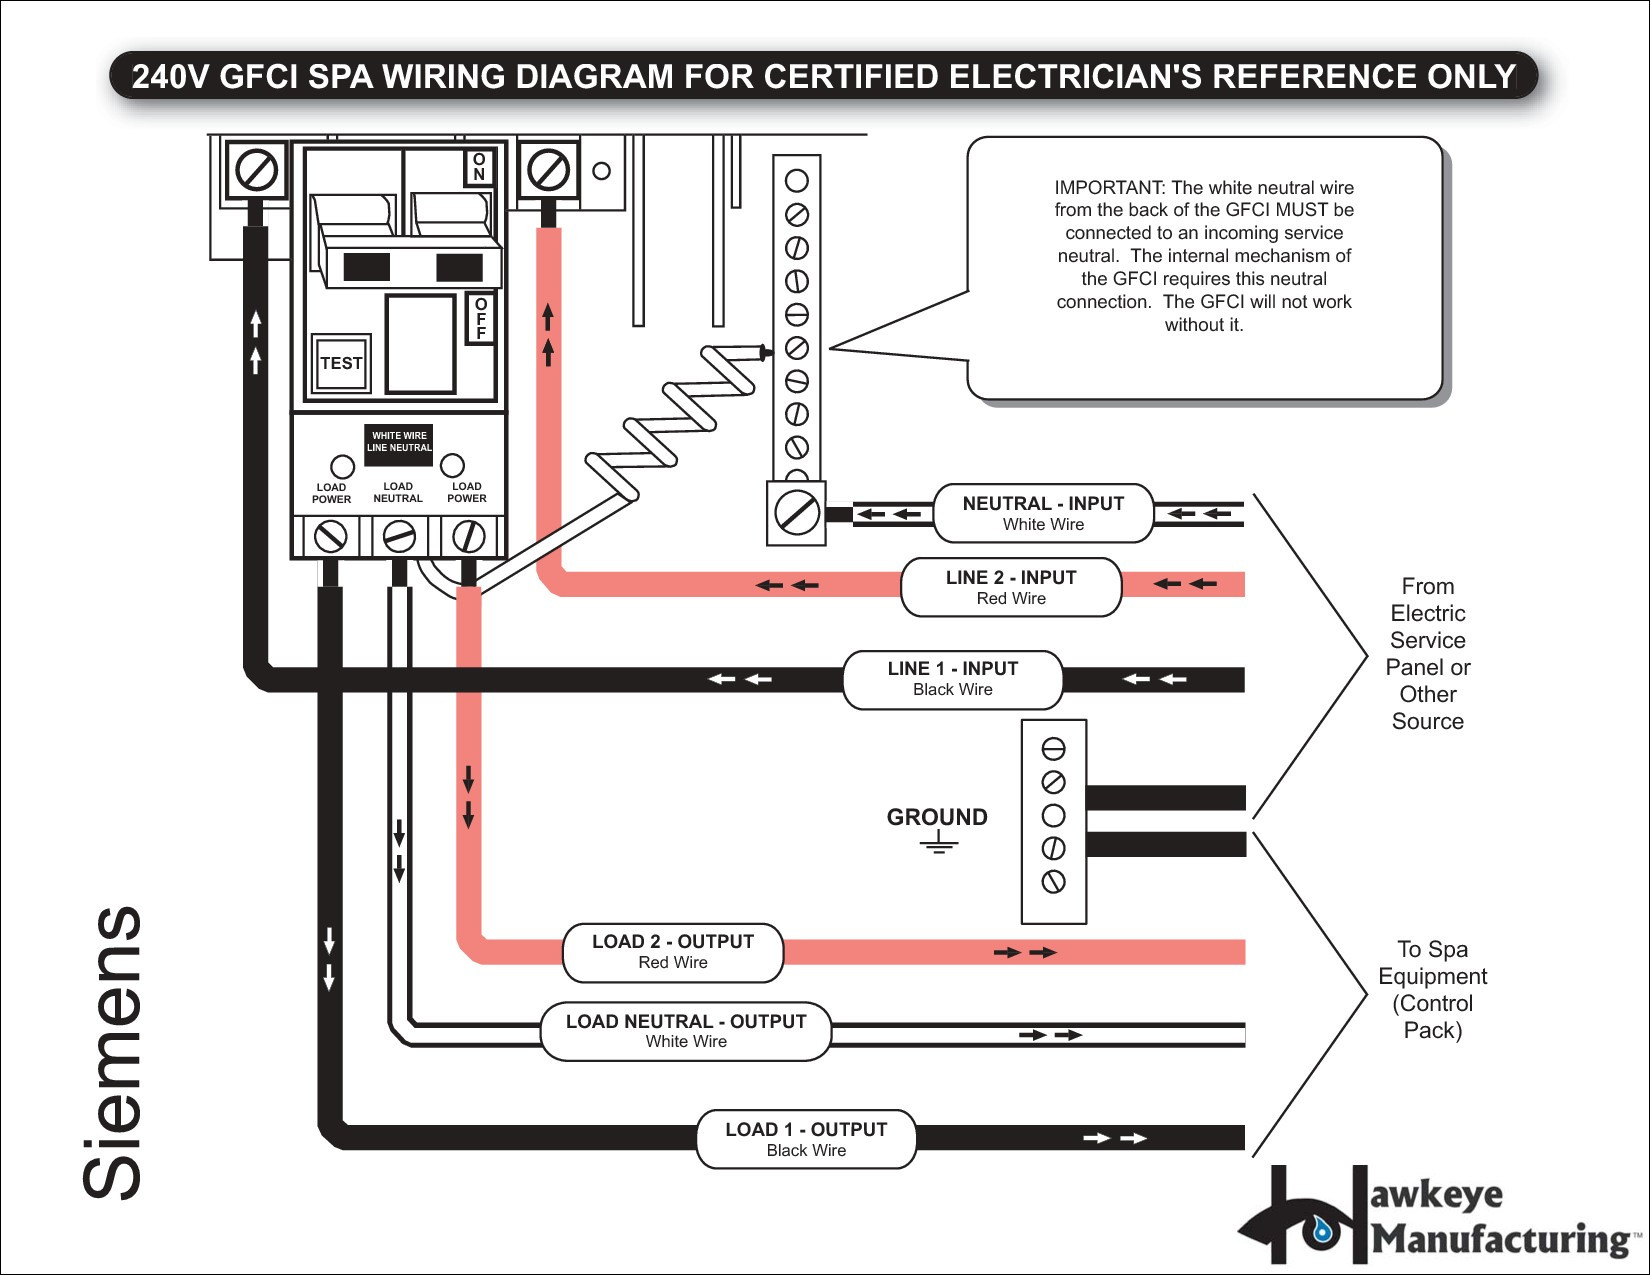 Fire Pump Controller Wiring Diagram Gallery